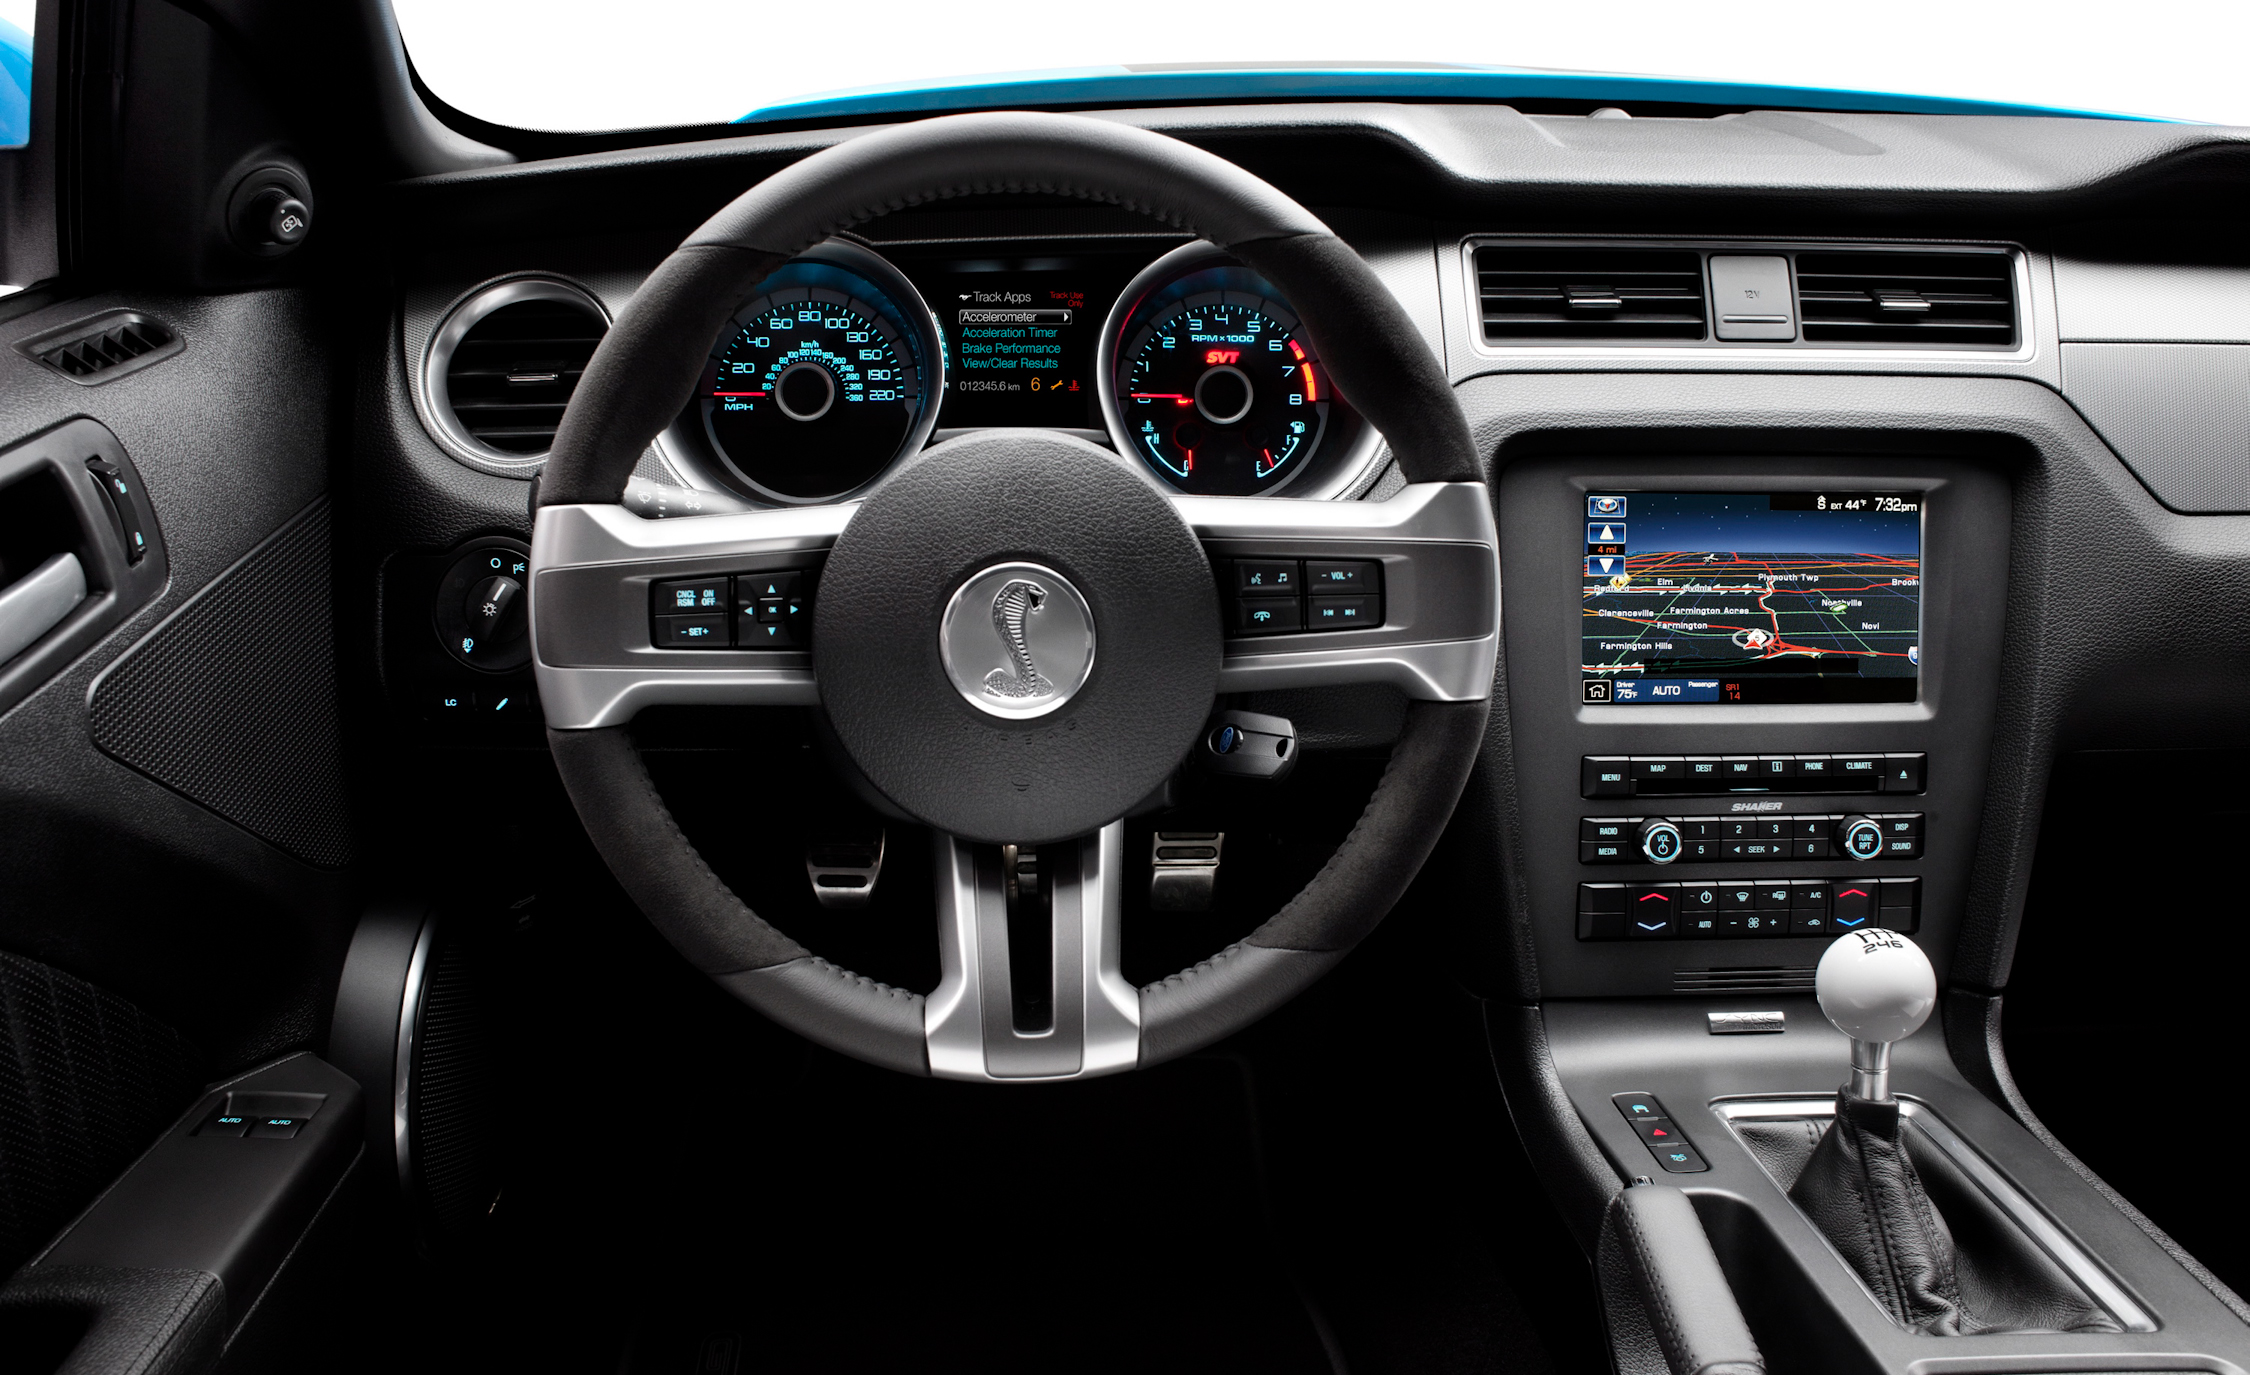 2013 Ford Mustang Shelby GT500 Interior View Steering Wheel (View 26 of 47)